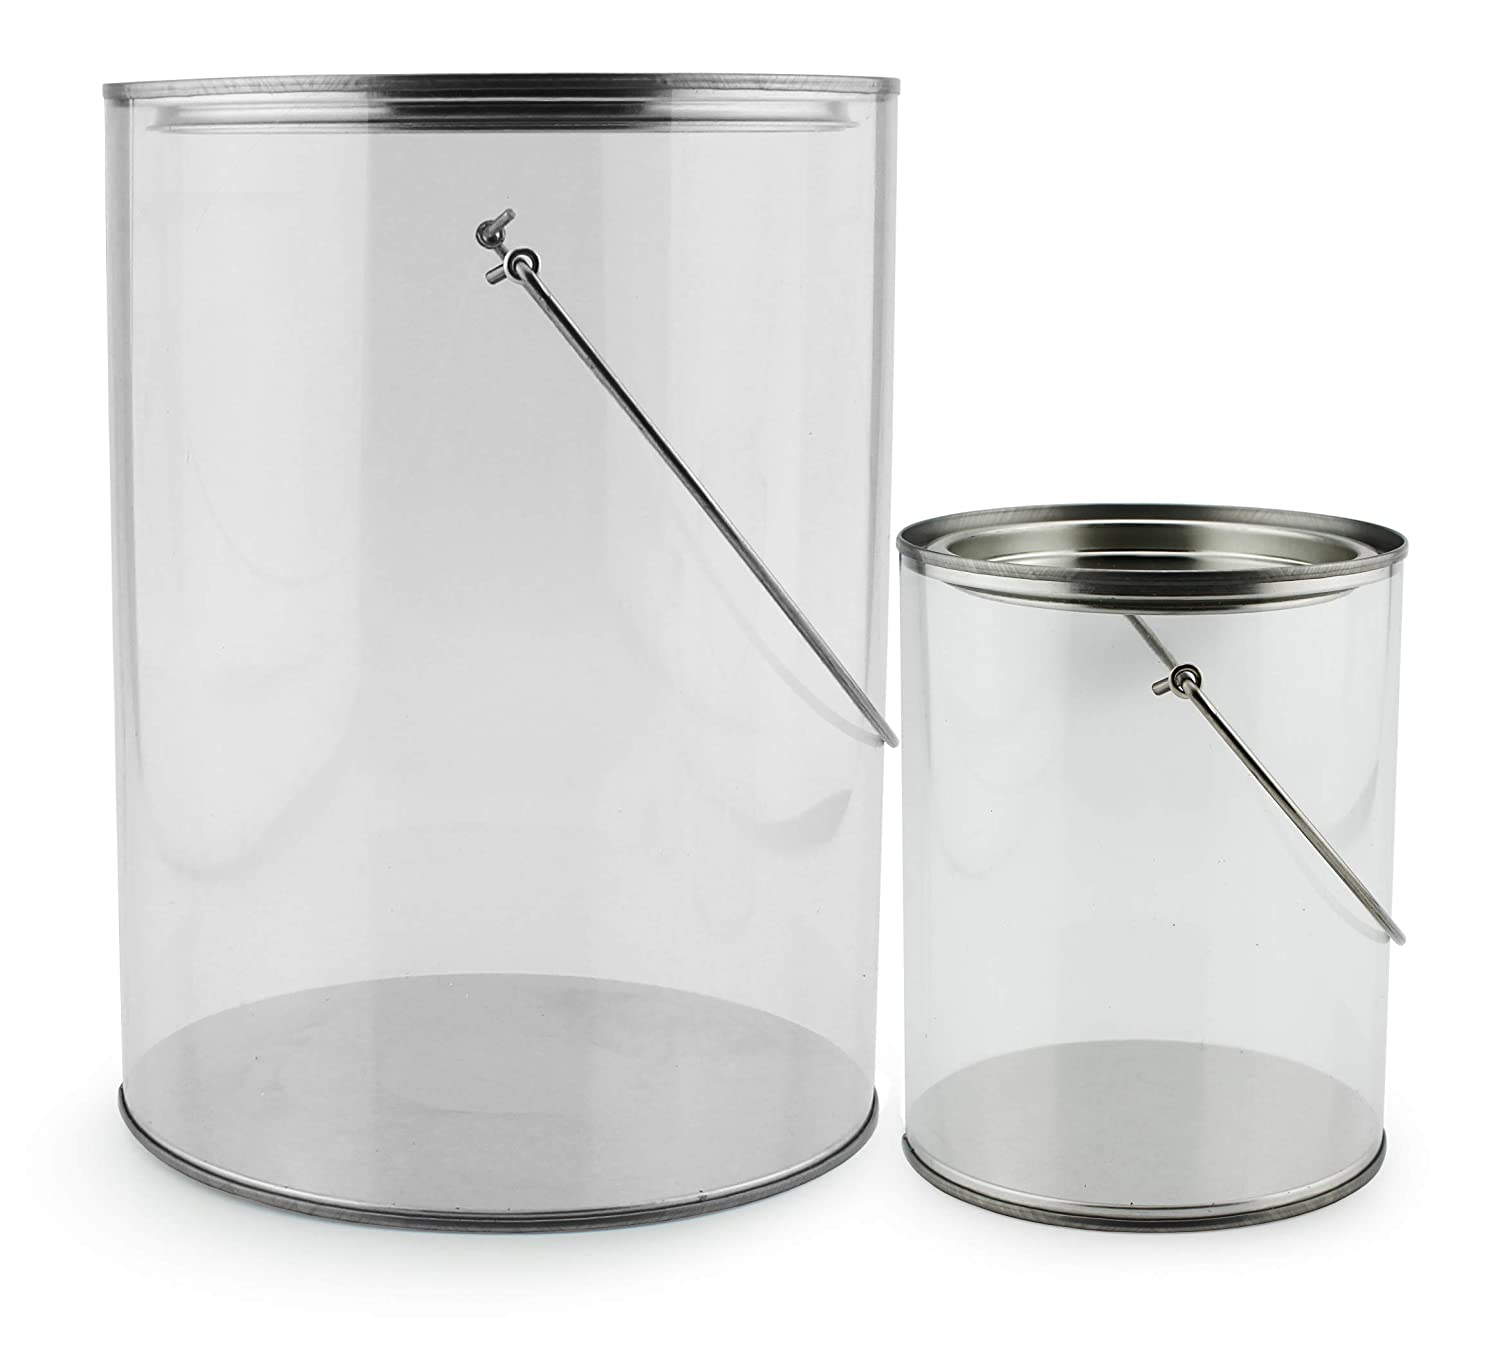 Clear Plastic Paint Cans (Gallon and Quart Combo Pack, Set of 2); Arts & Crafts Paint Buckets for Decorative & Party Use